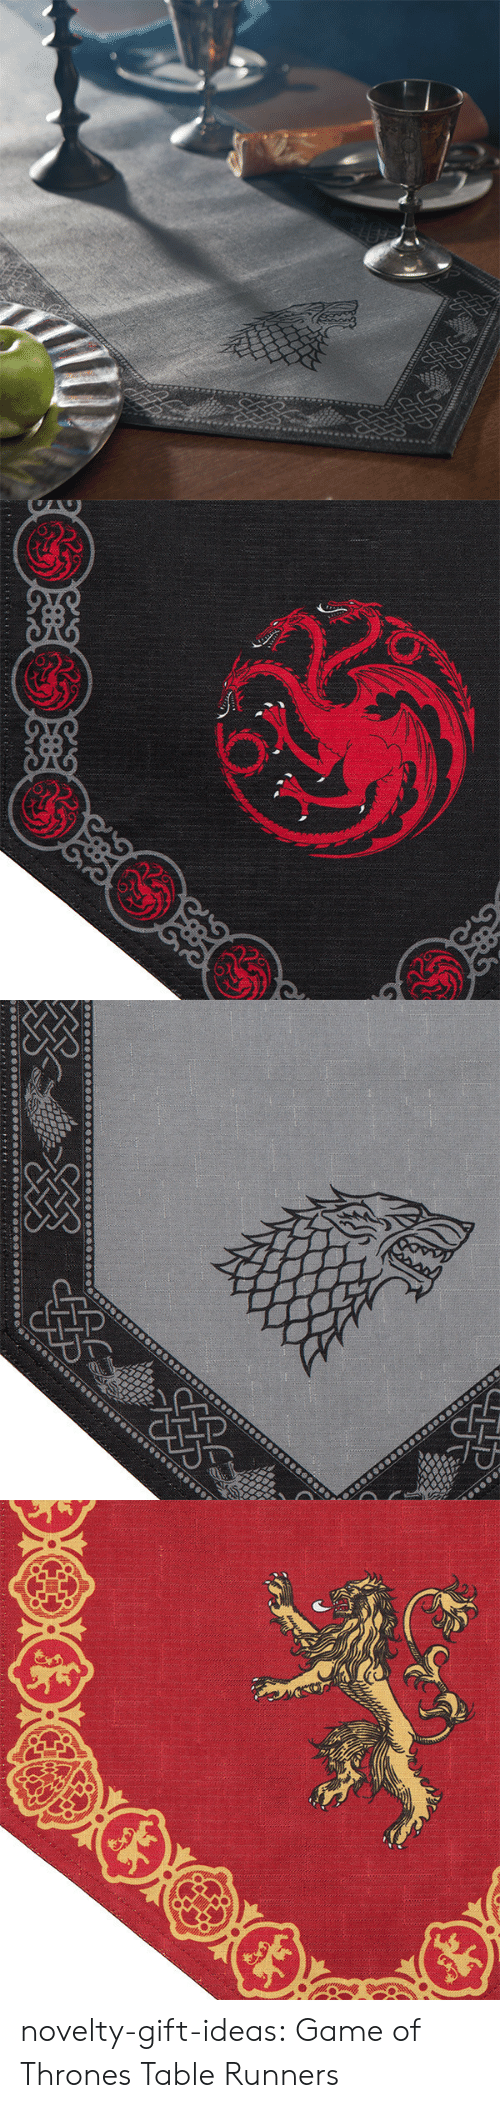 runners: novelty-gift-ideas:  Game of Thrones Table Runners